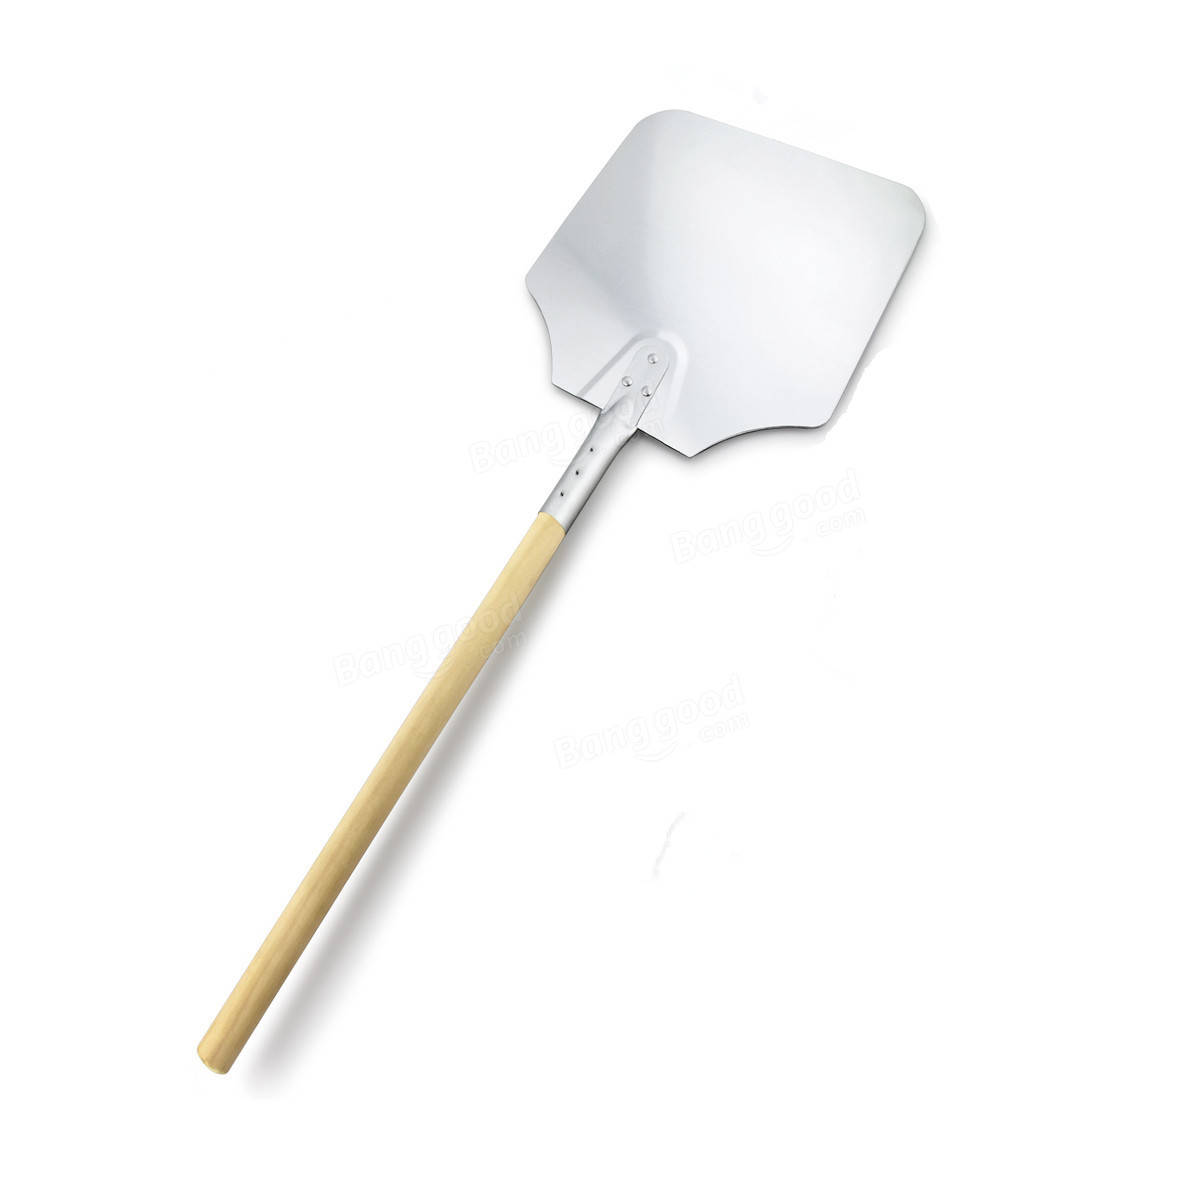 Proffesional Alumínio Alloy Shovel Pizza Shovel Cheese Shovel Knife Spatula Baking Tool